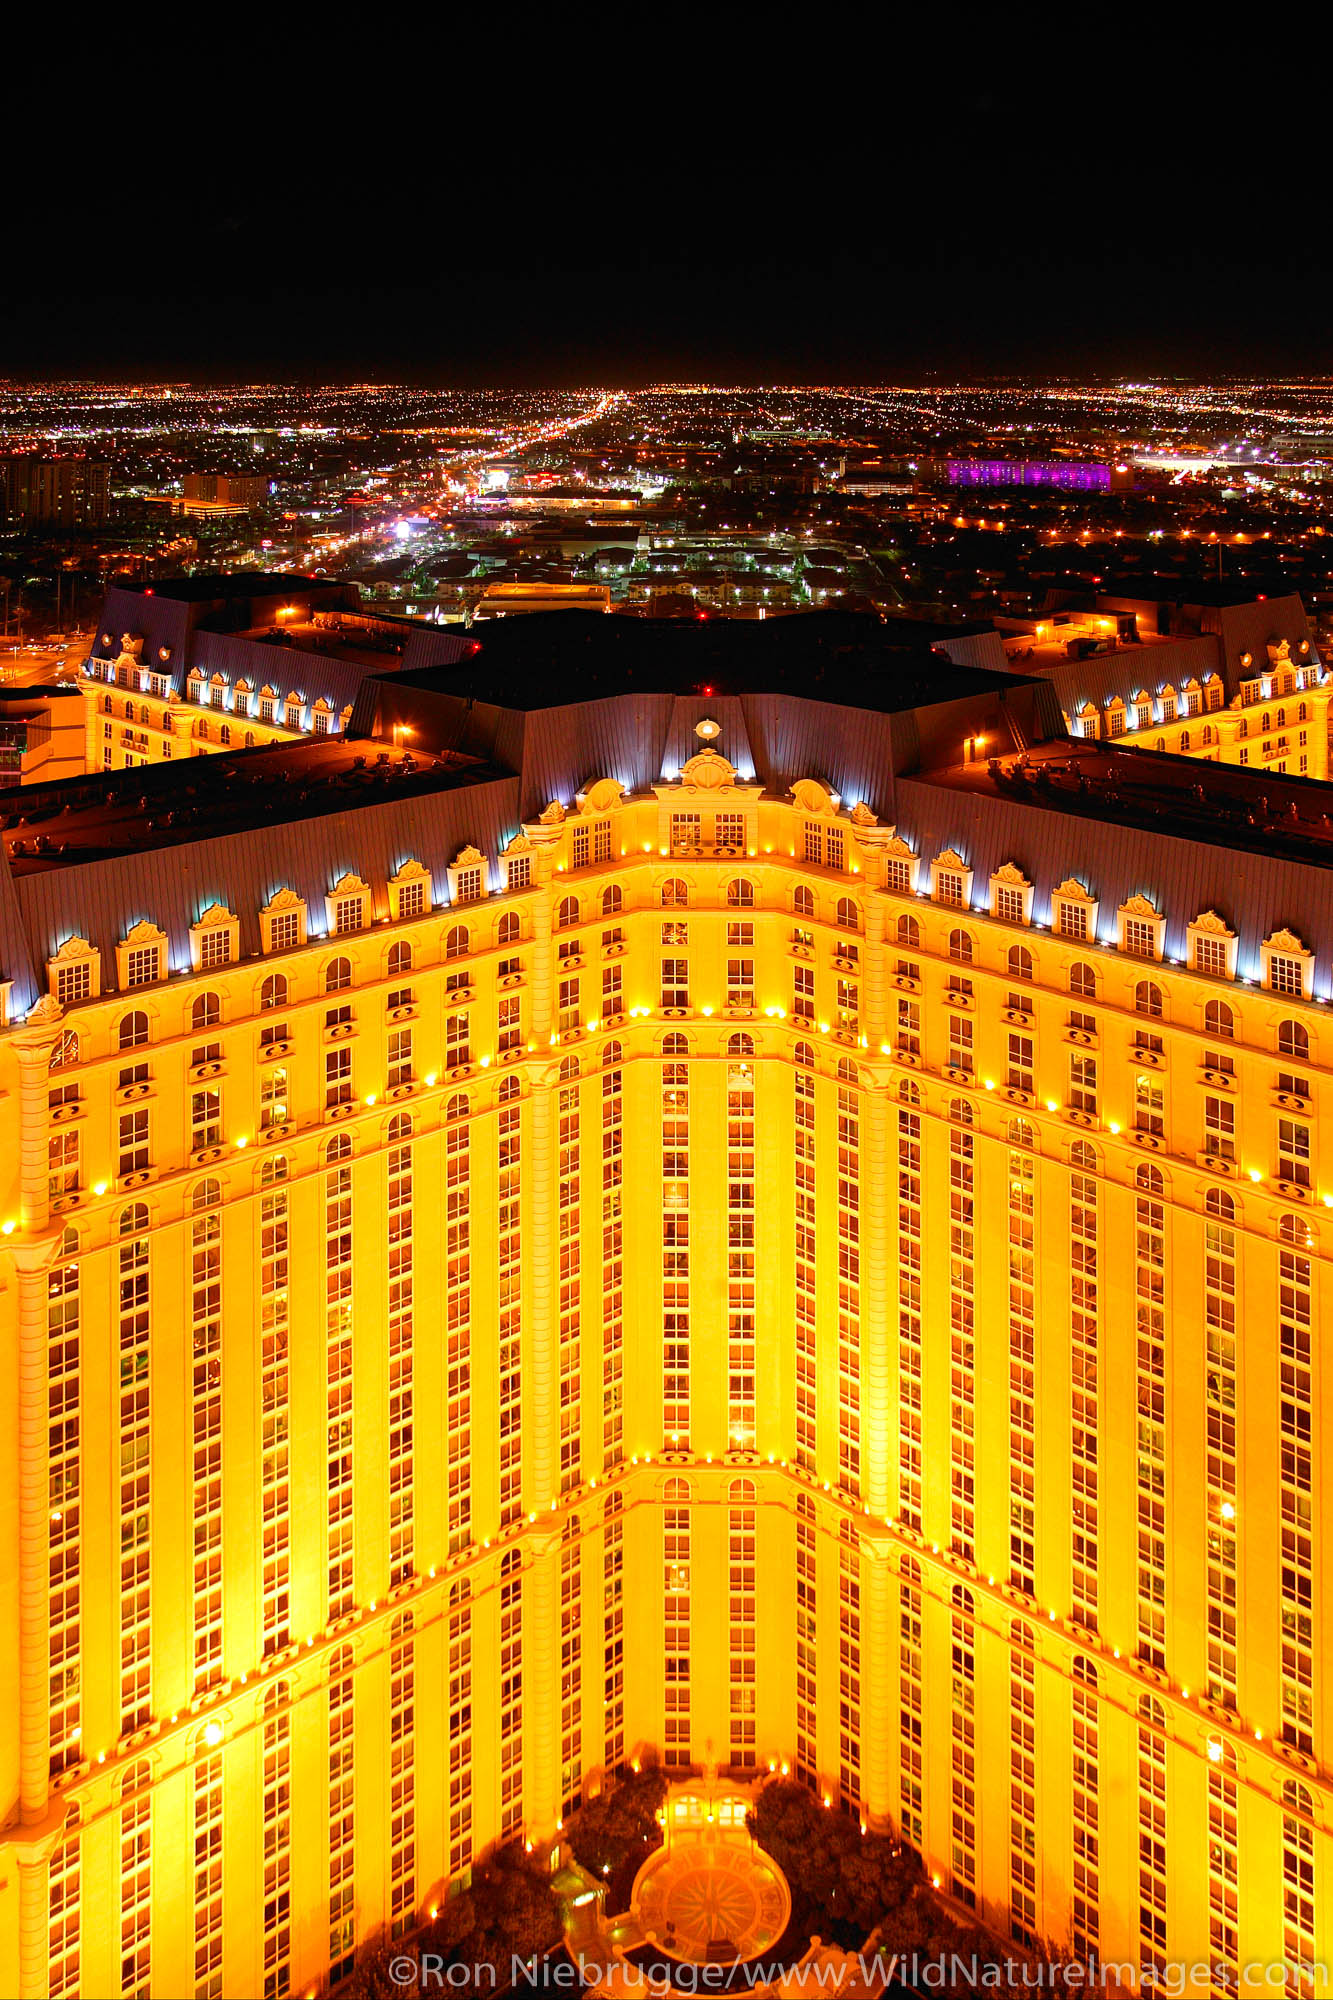 The Paris resort hotel and casino viewed fromthe Eiffel Tower in Las Vegas, Nevada.